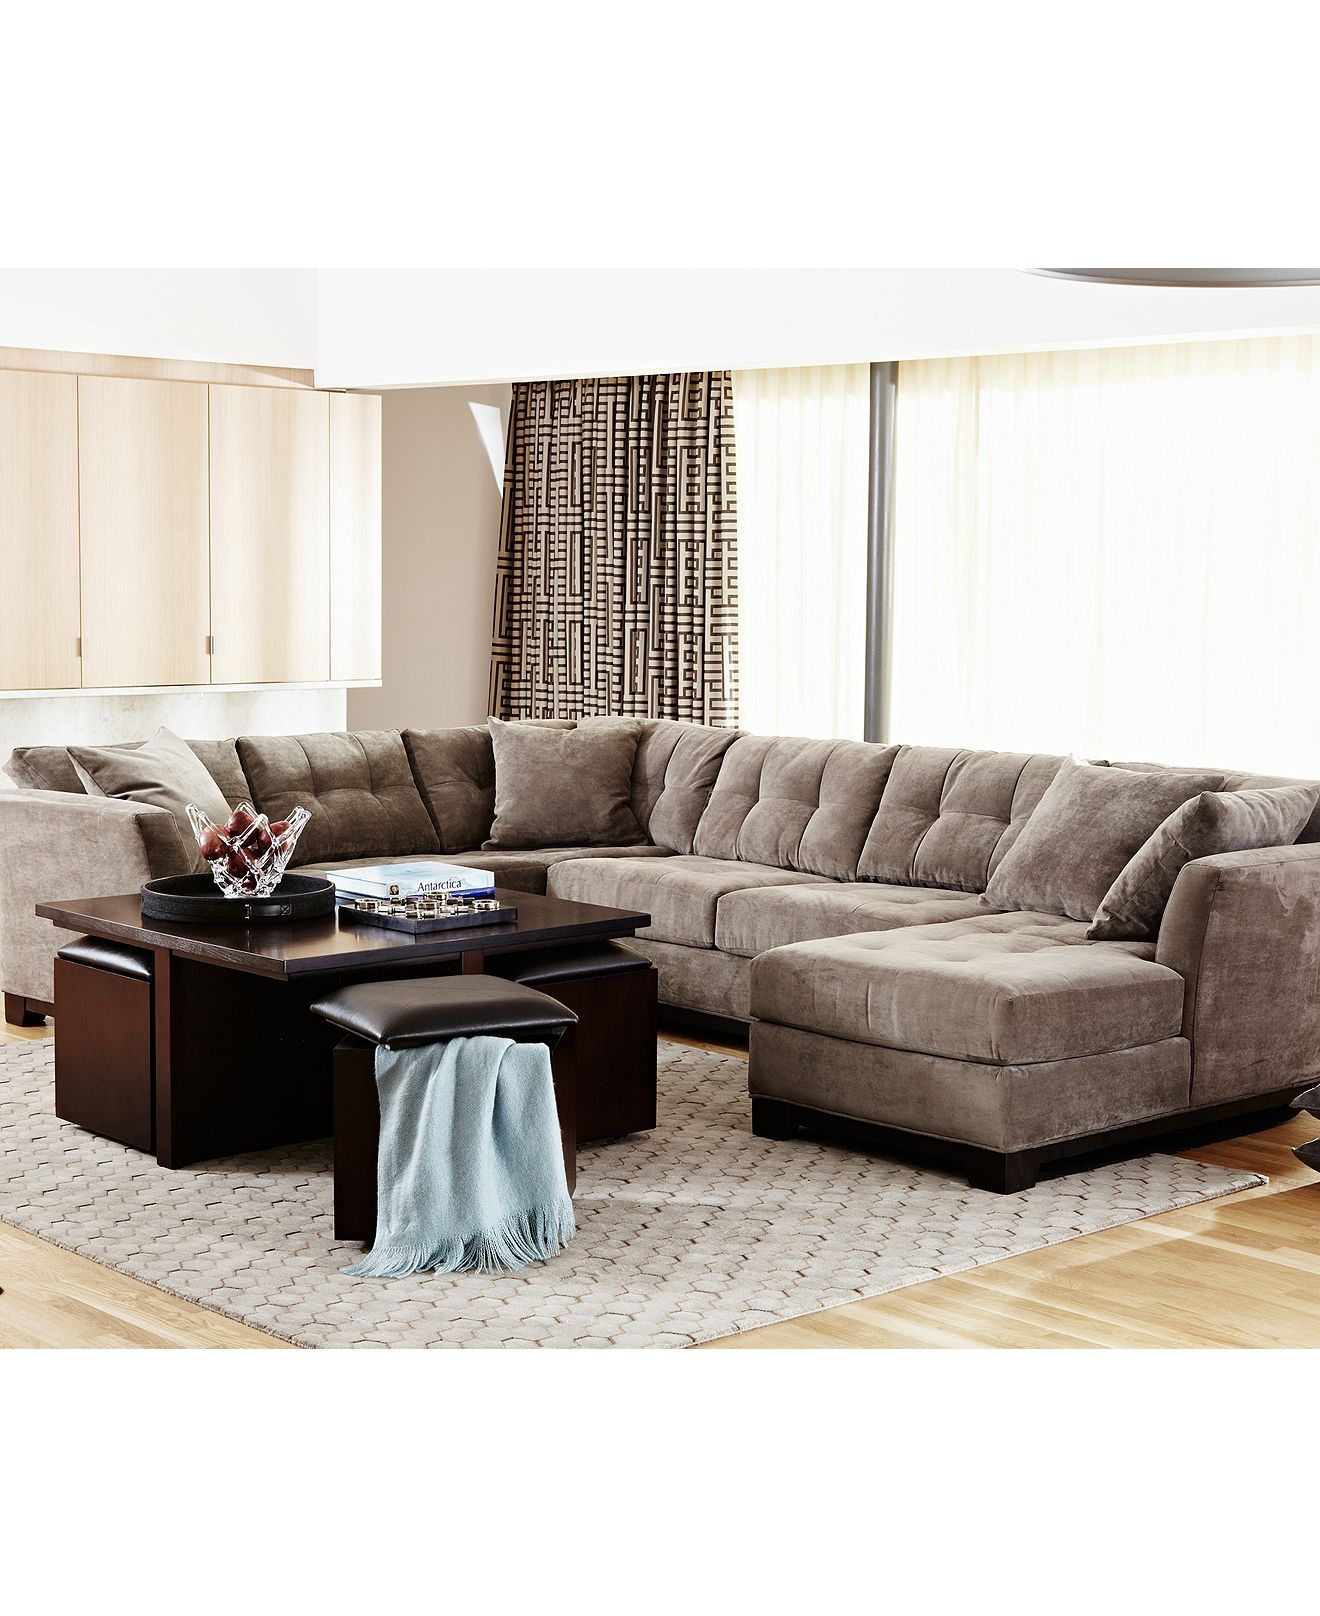 Elliot Fabric Sectional Living Room Furniture Collection Hotels With Separate Closeout Created For Macy S Sofa Chaise